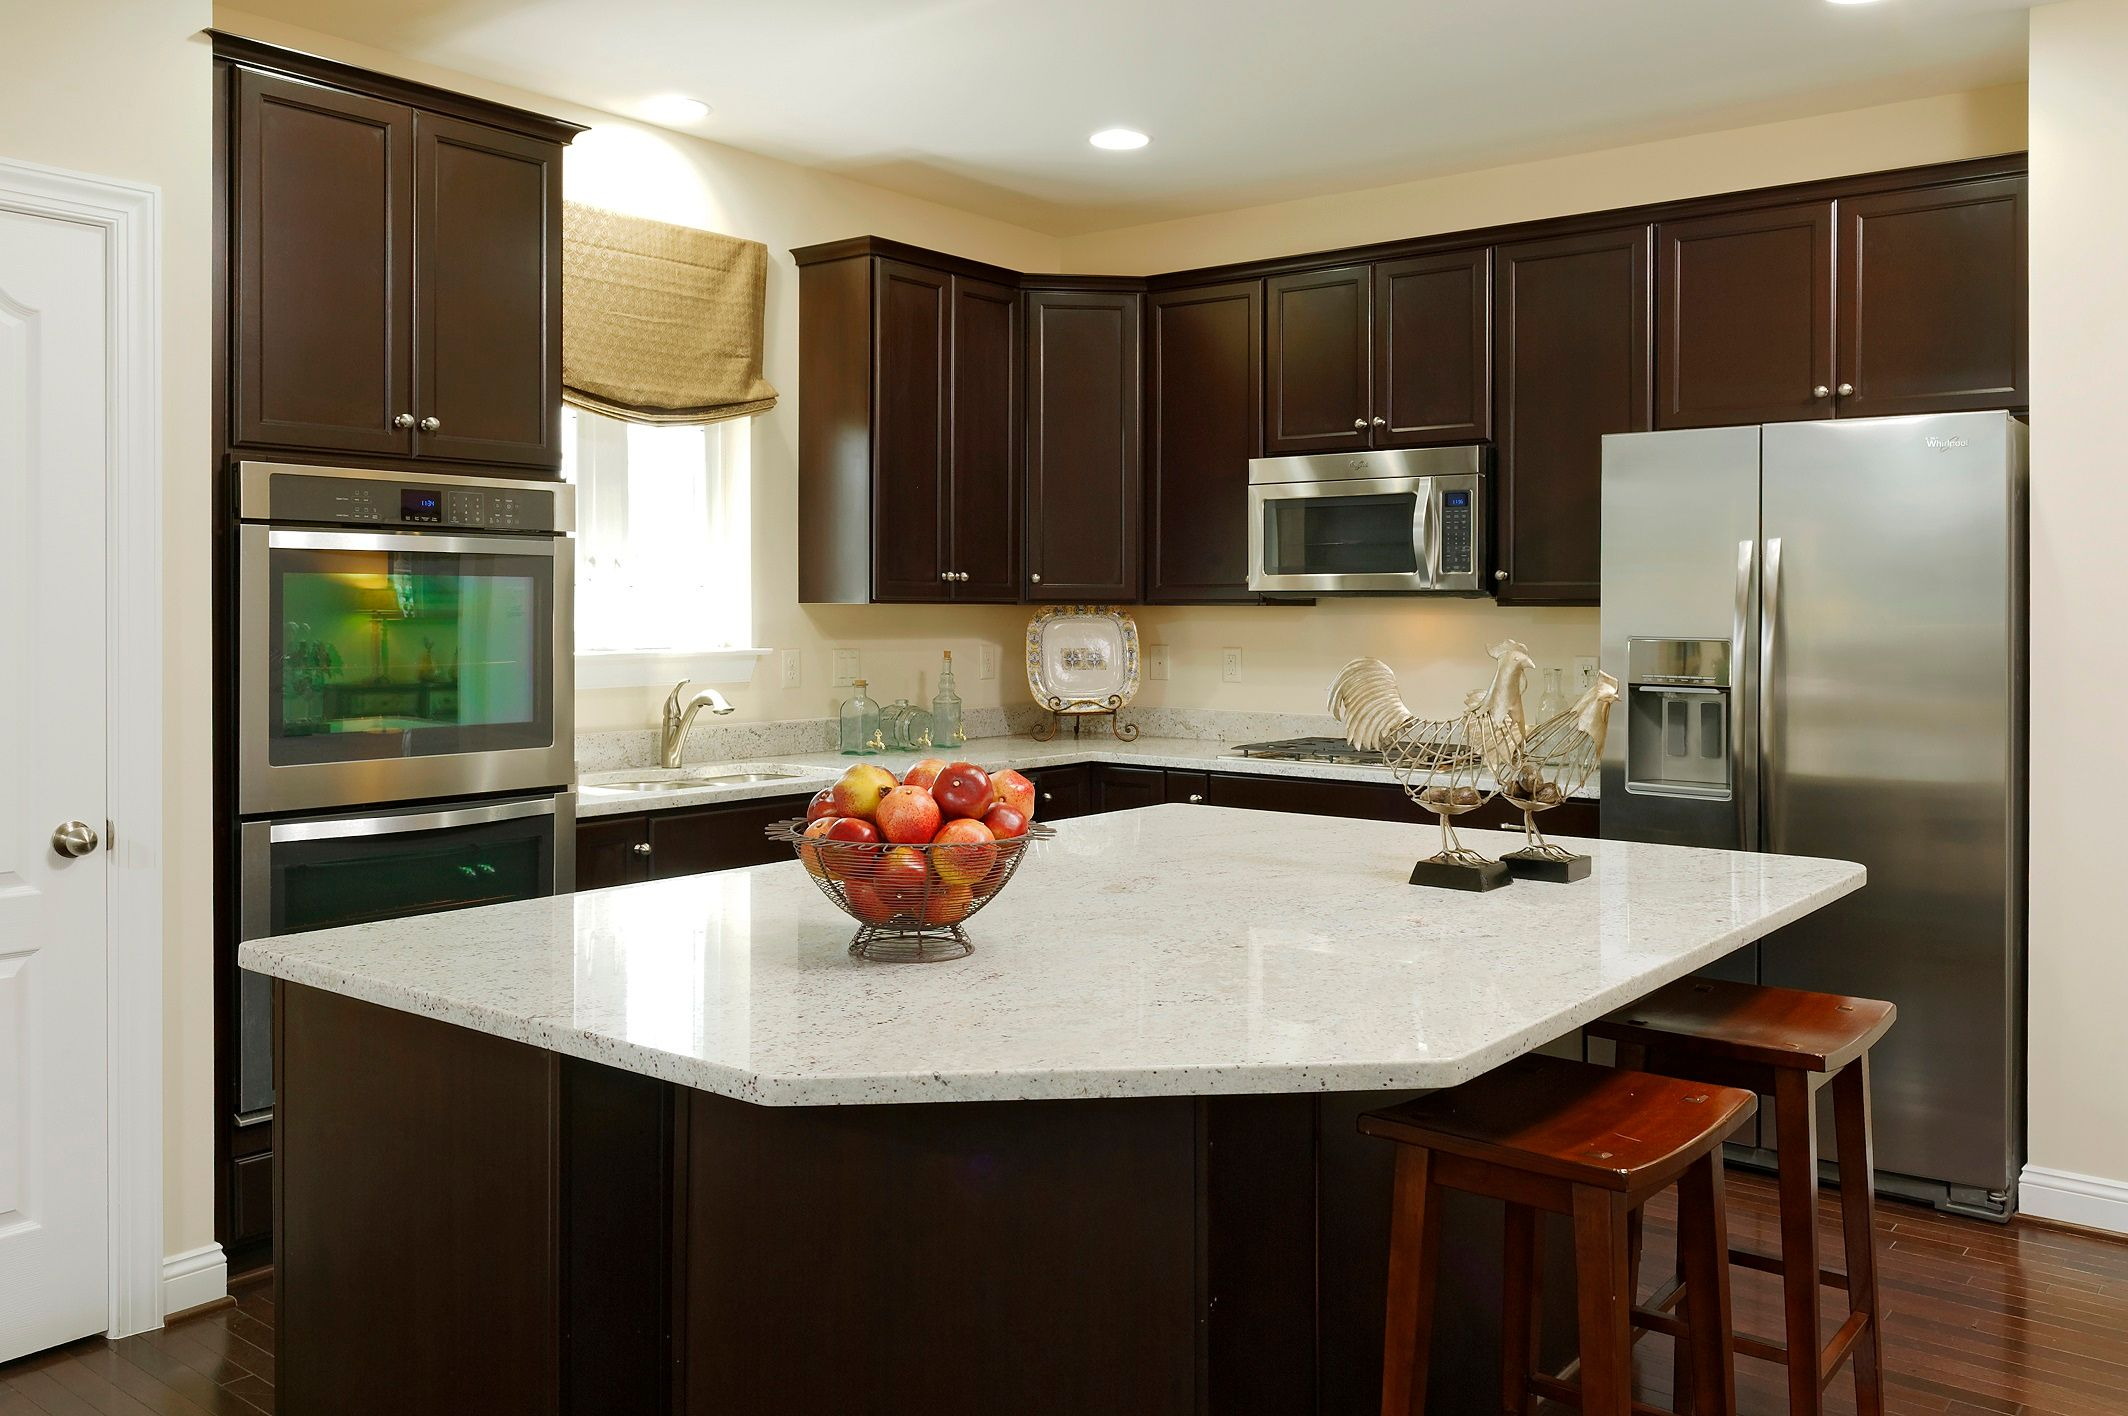 Kitchen featured in the Ellicott II By Williamsburg Homes LLC in Baltimore, MD